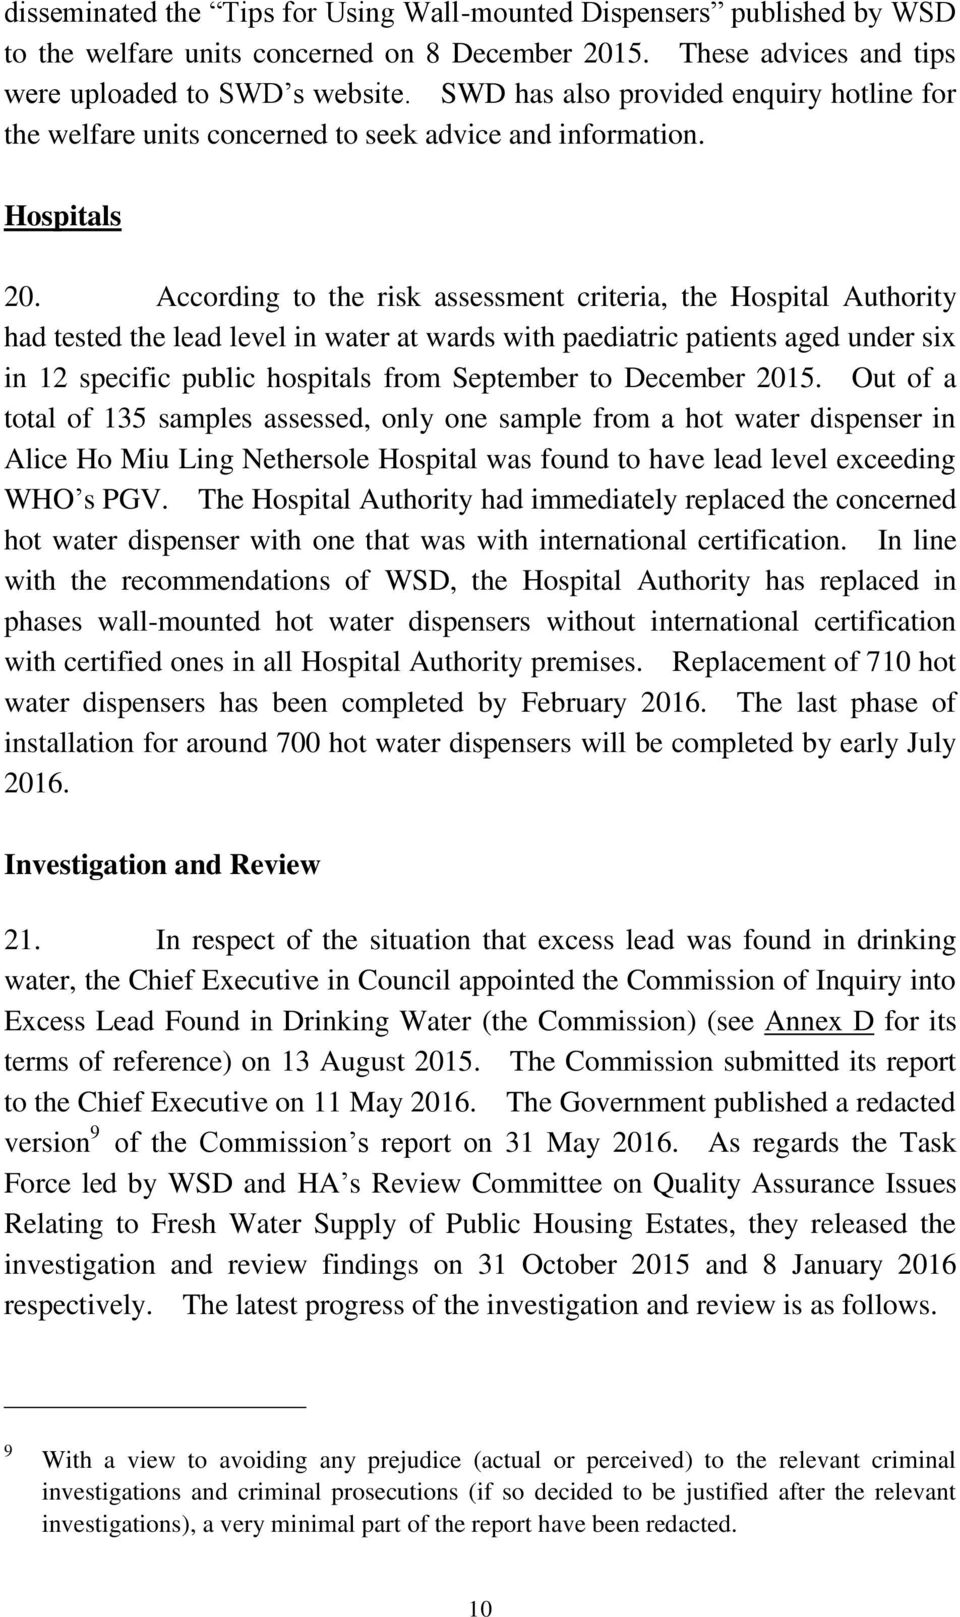 According to the risk assessment criteria, the Hospital Authority had tested the lead level in water at wards with paediatric patients aged under six in 12 specific public hospitals from September to